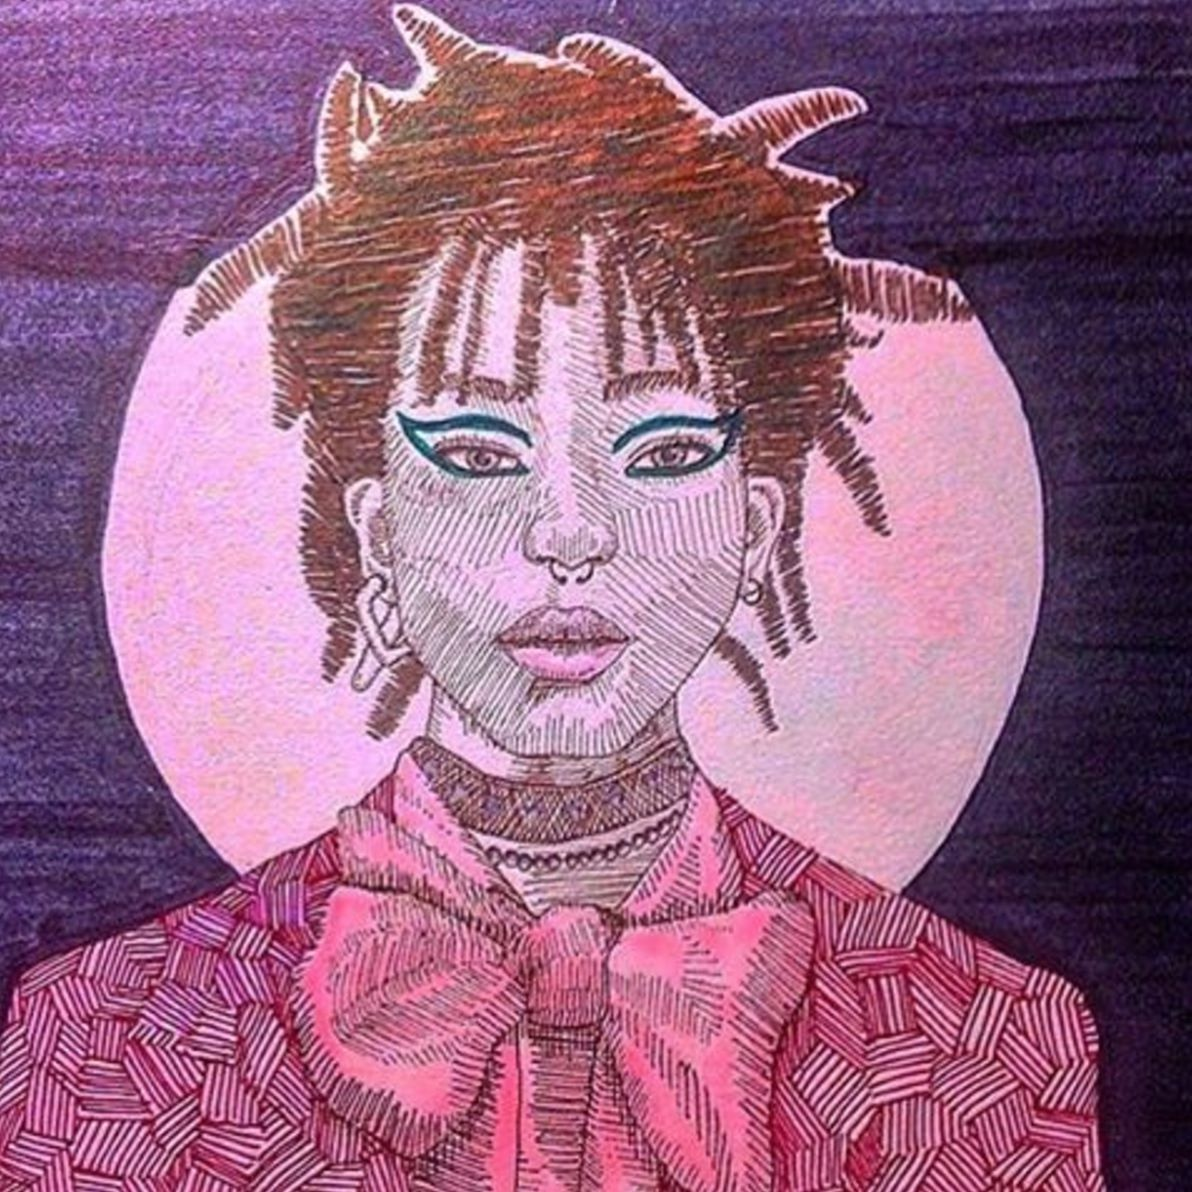 Willow Smith Releases 'Mellifuous' EP [Listen Now]